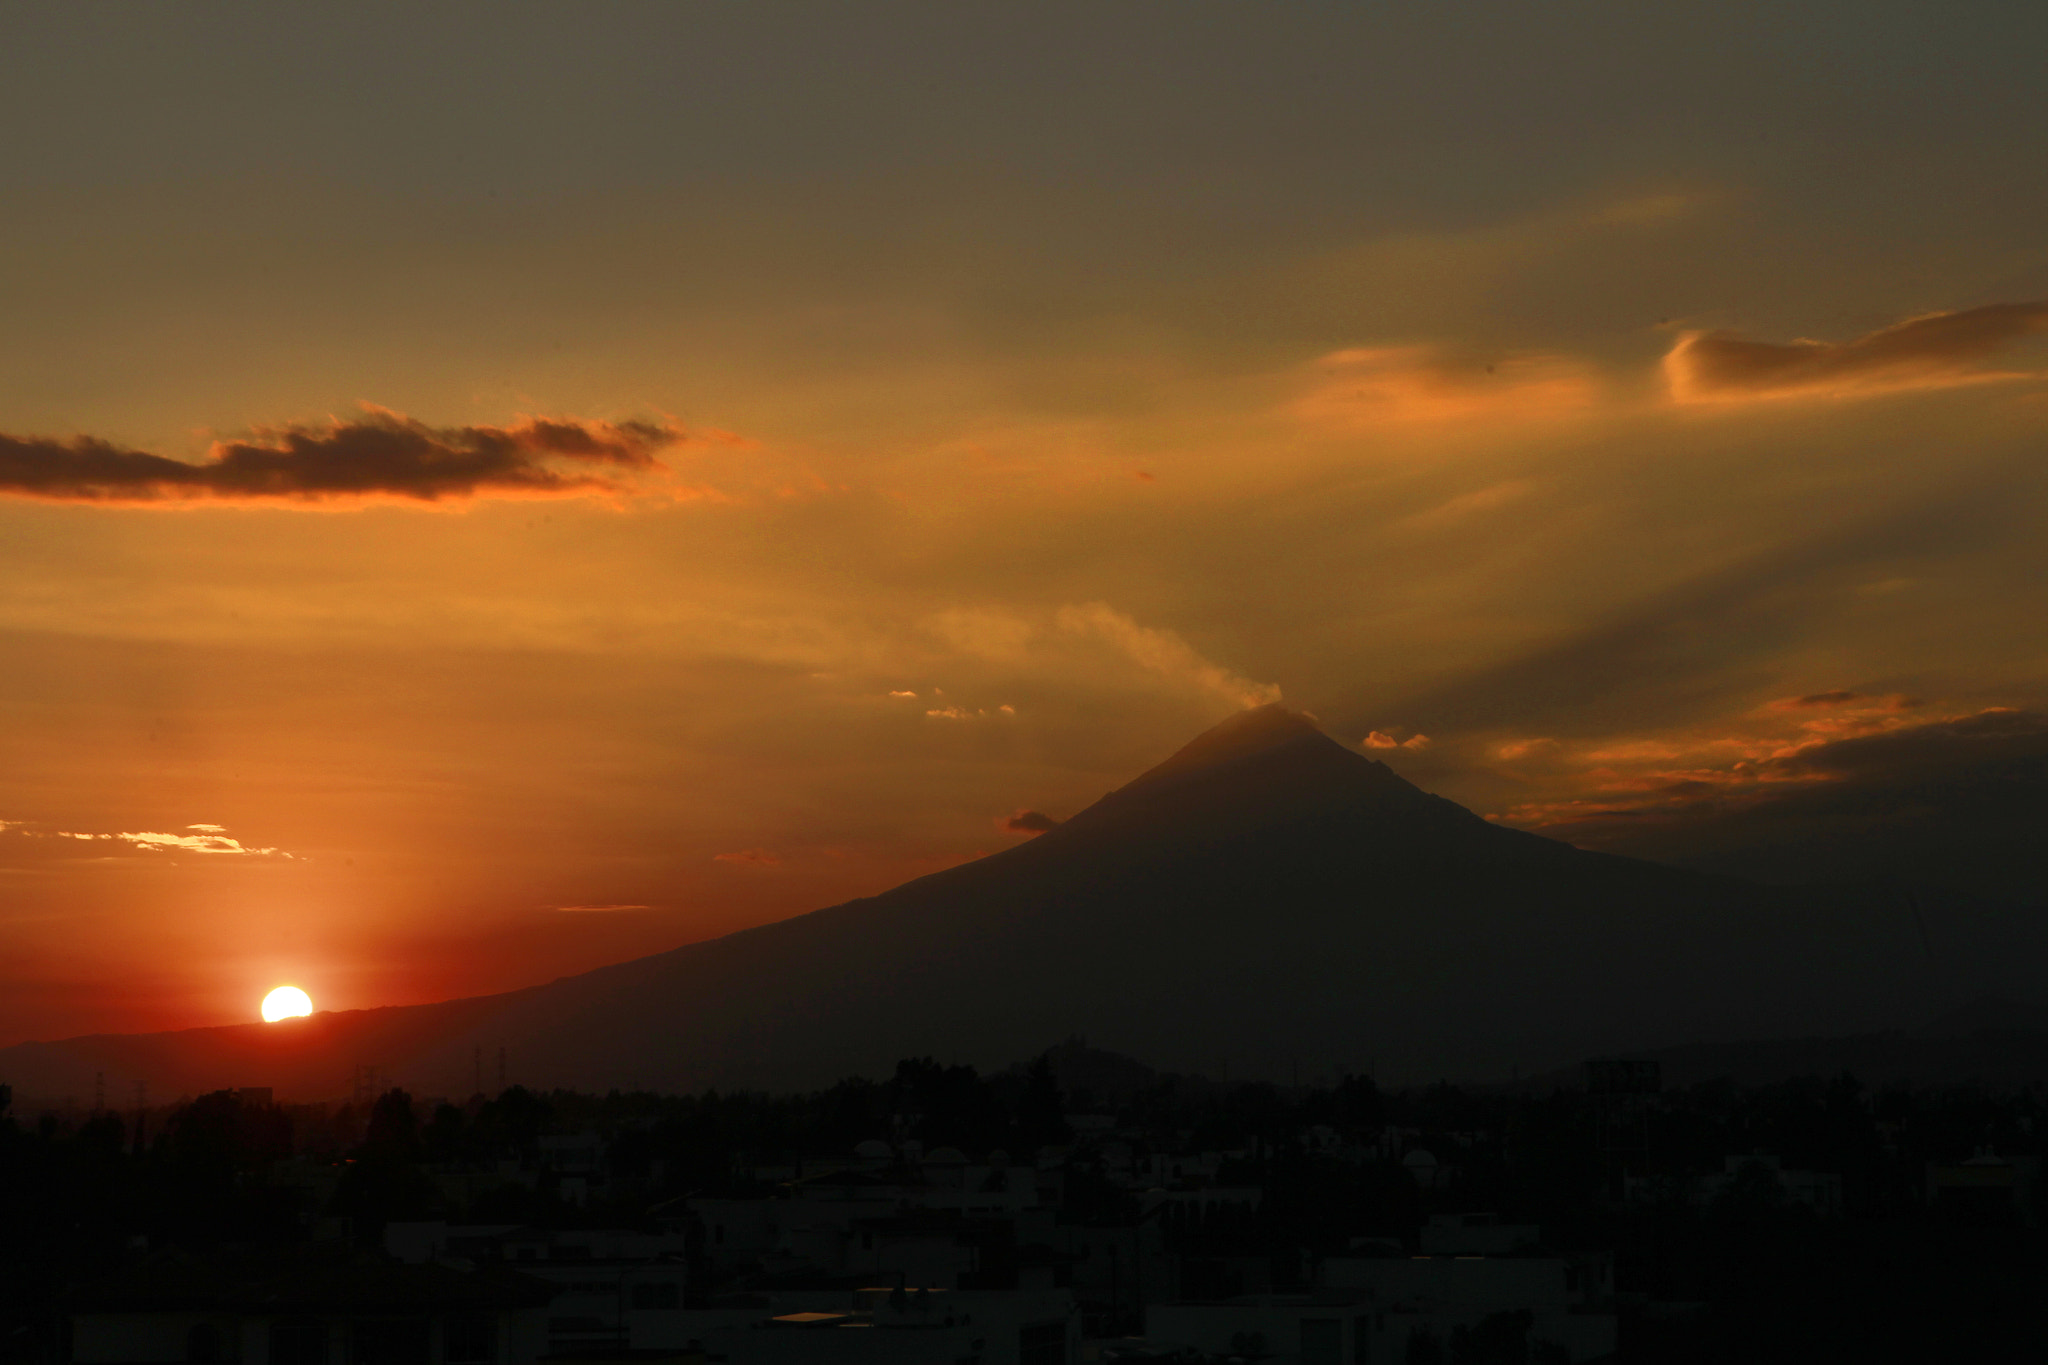 Photograph Sunset and Popocatepetl, by Cristobal Garciaferro Rubio on 500px